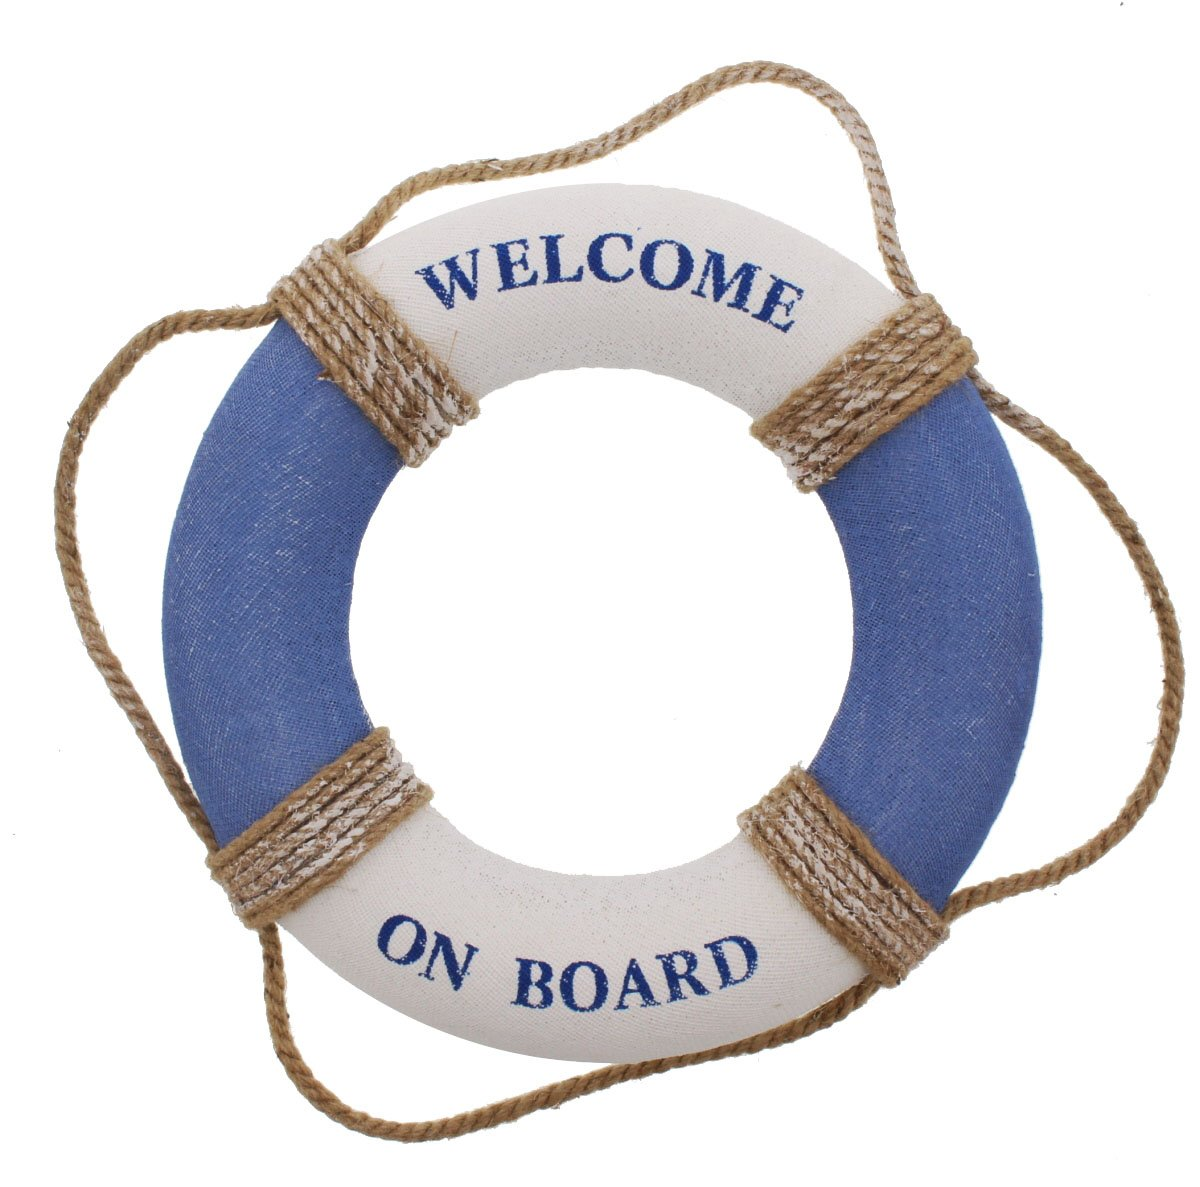 Juvale Life Ring Welcome on Board - Life Ring Swim Tube Decoration Decor Life Ring Greeting Blue White Nautical - 12.5 inches